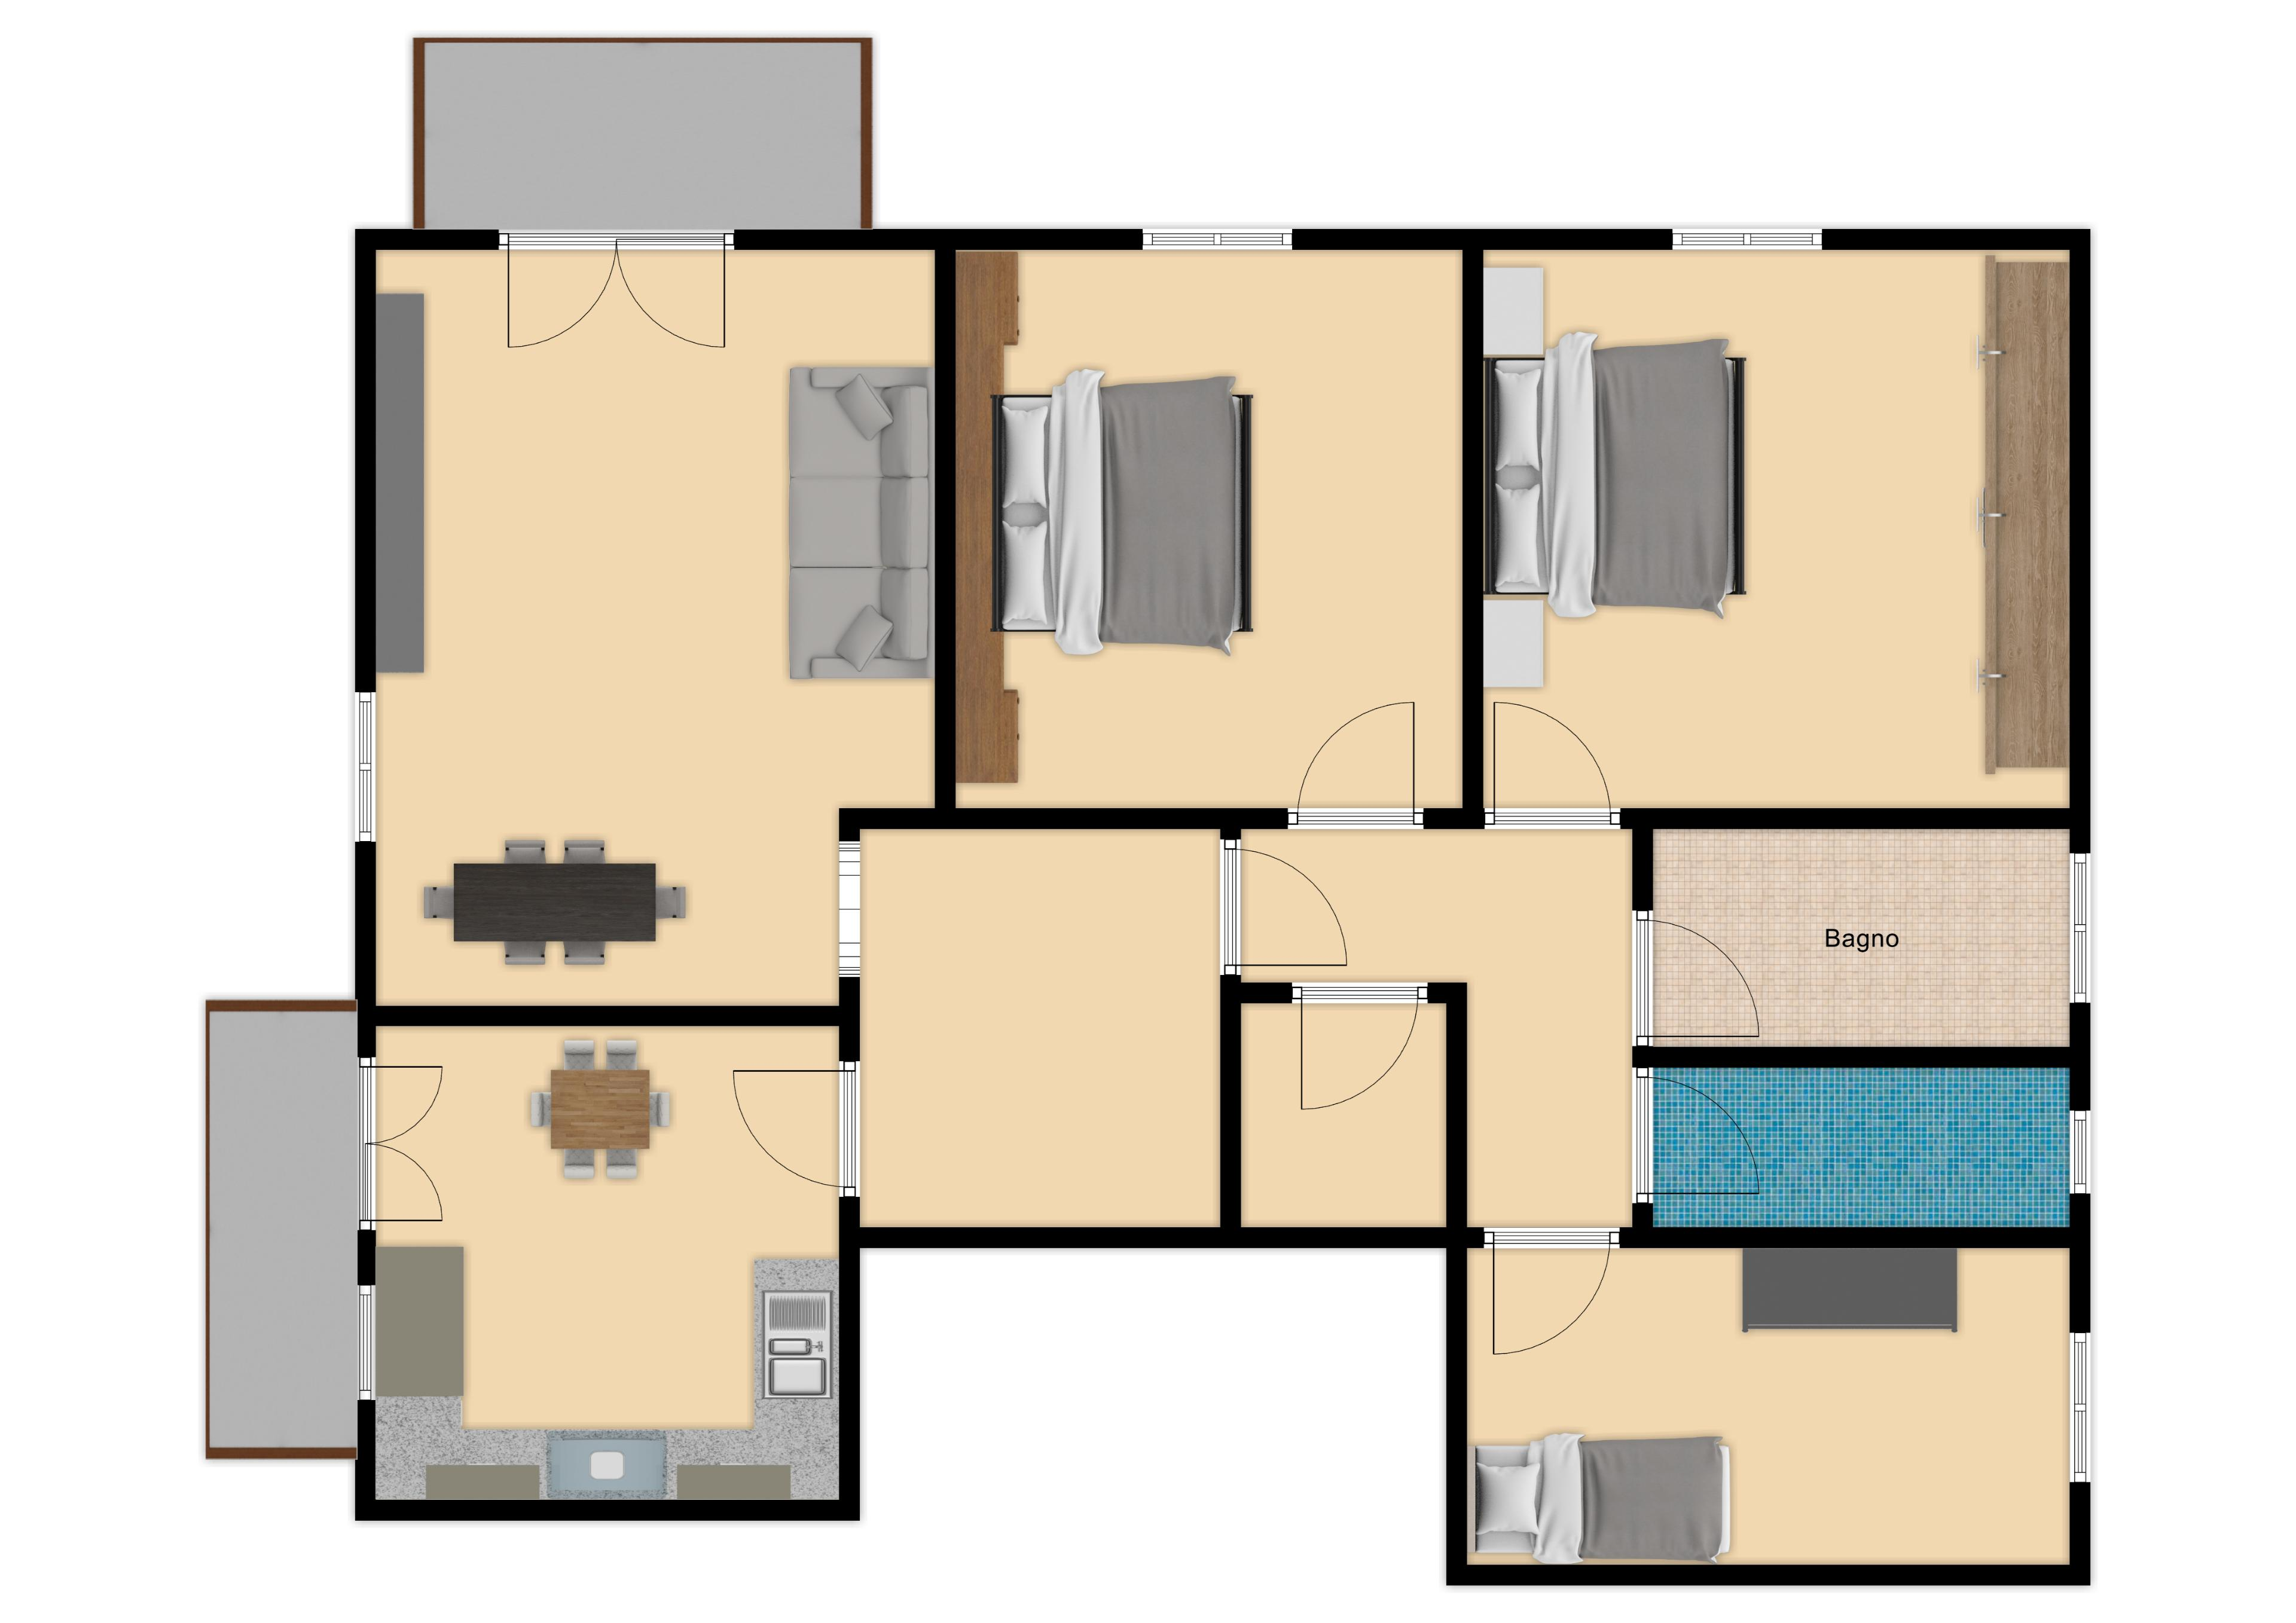 Plan 1/1 for ref. 4250